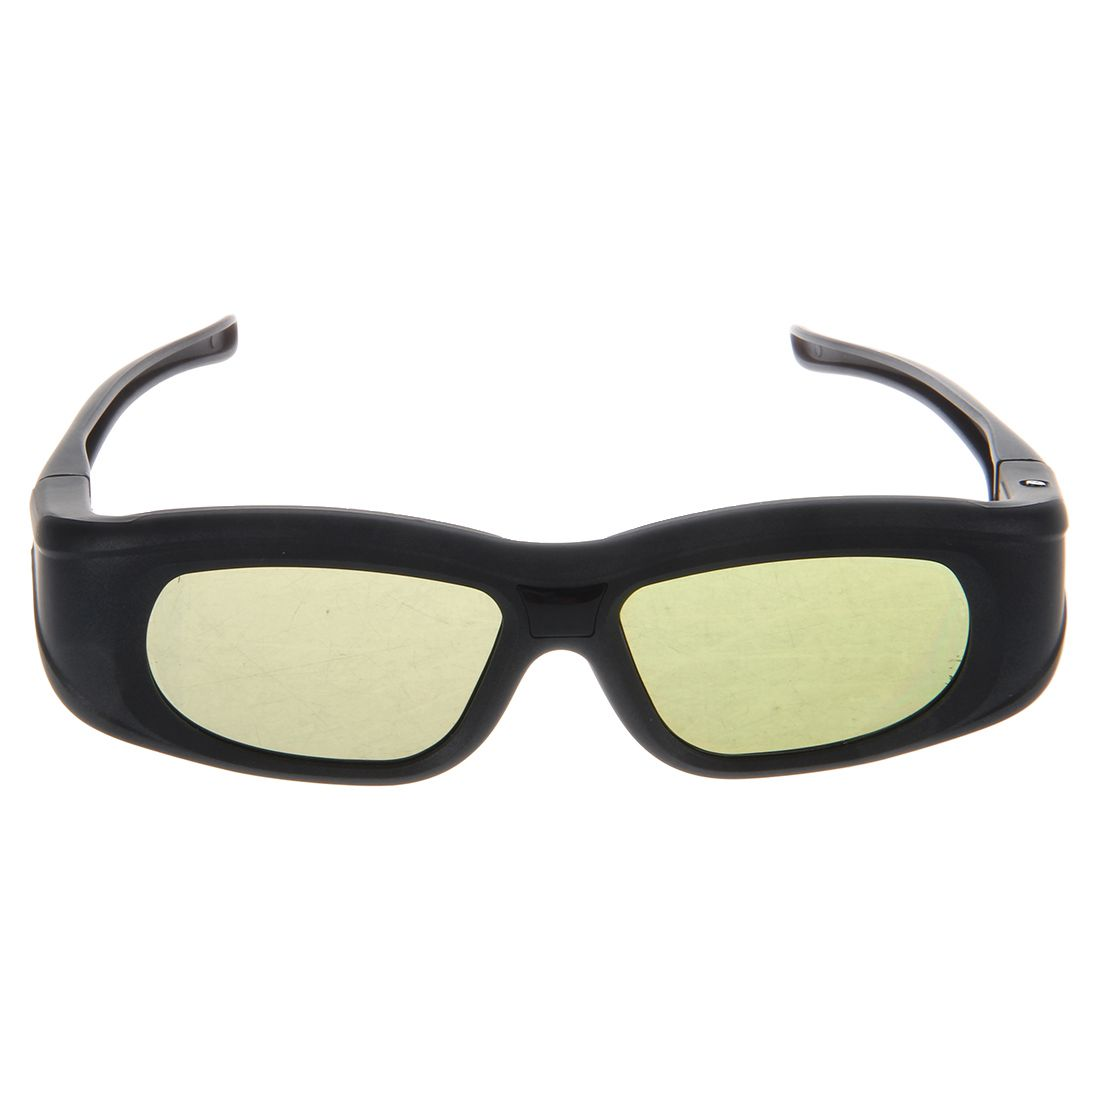 HOT- IR Bluetooth Black 3D active shutter glasses for TOSHIBA 46TL968G 32TL963G 40TL933G 46TL933G SAMSUNG UAD6000 UAES5500 UAE